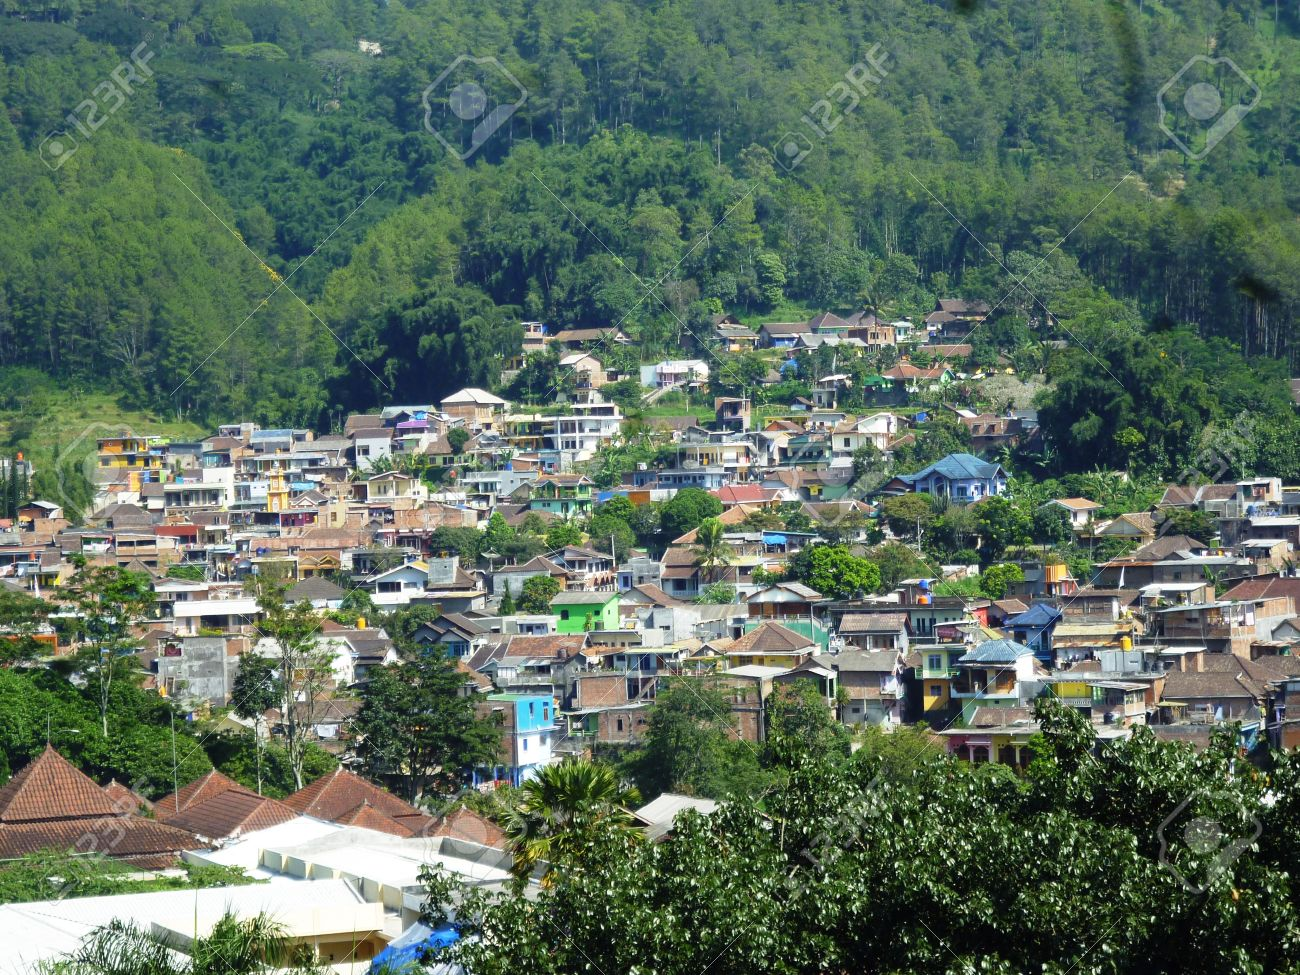 Residential Areas In Batu Hill Malang East Java Indonesia Stock Photo Picture And Royalty Free Image Image 28604009